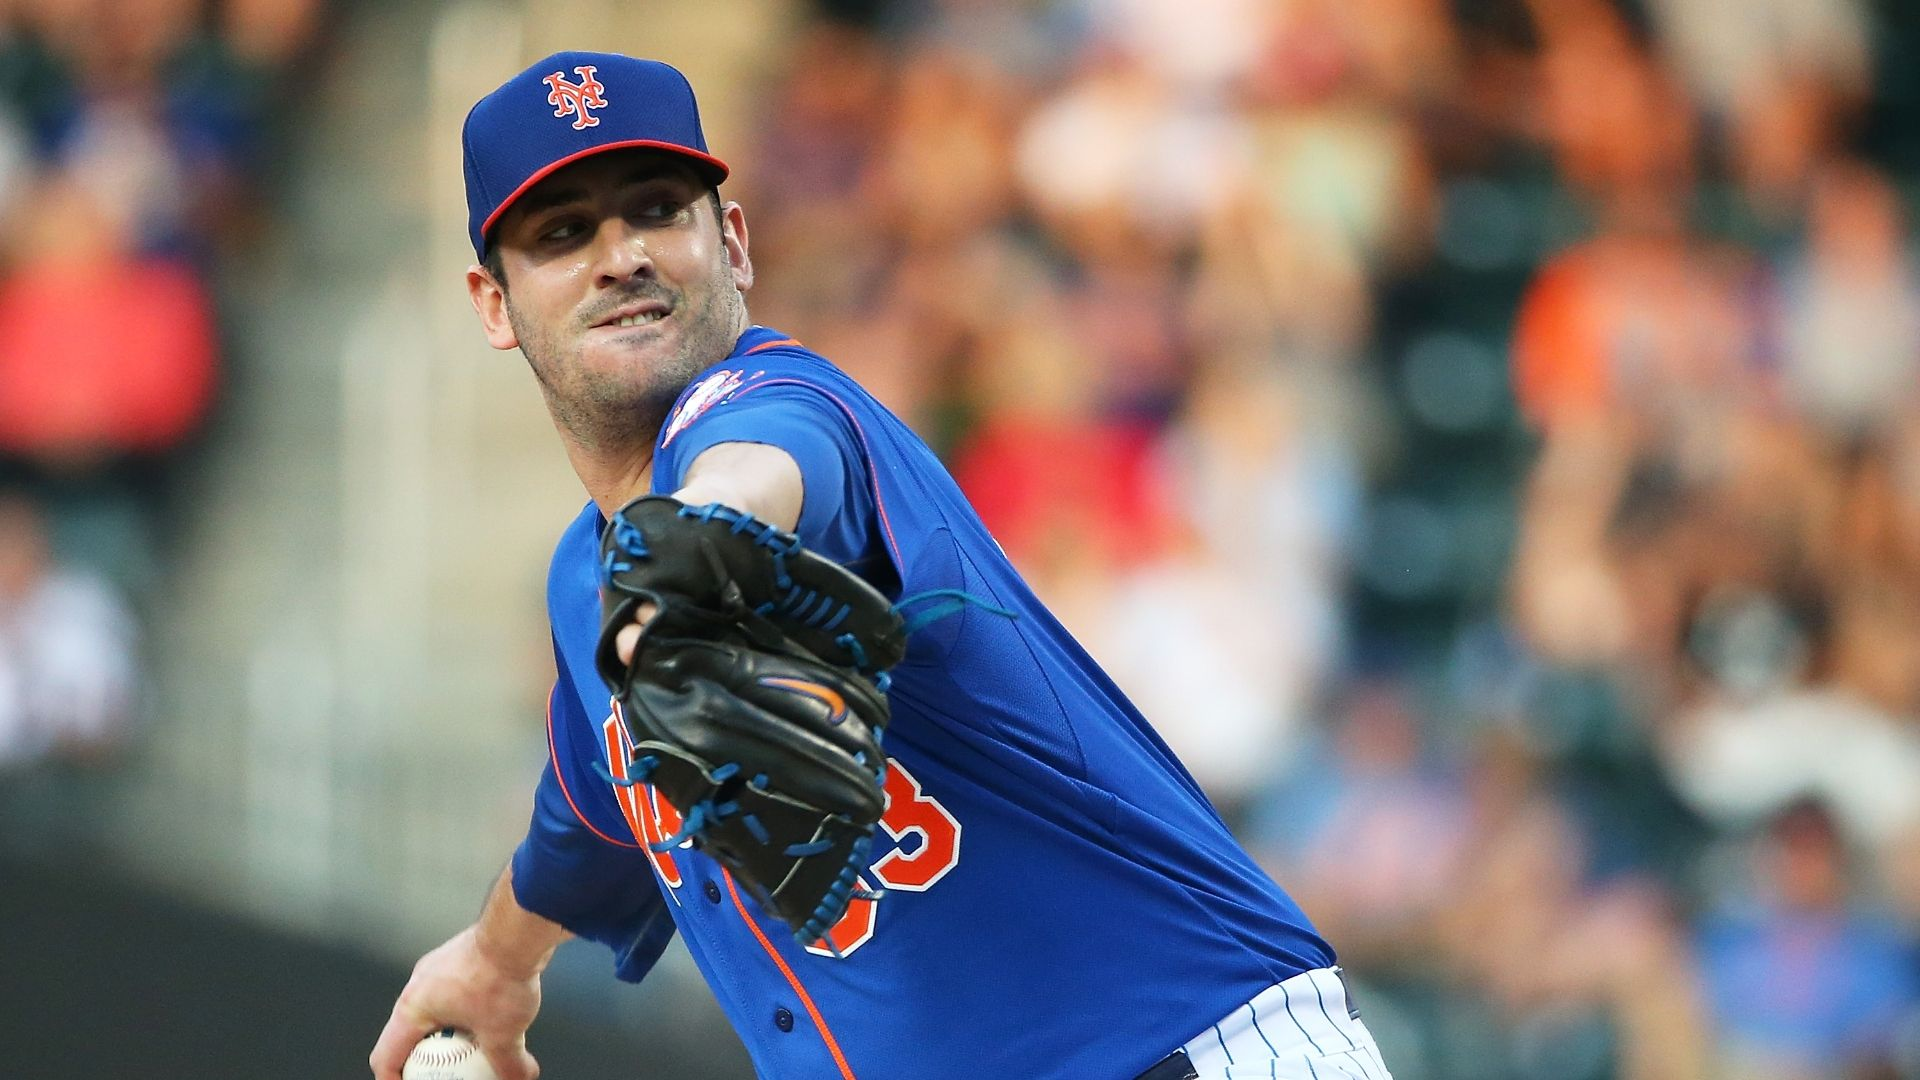 Harvey at a crossroads in pitching career